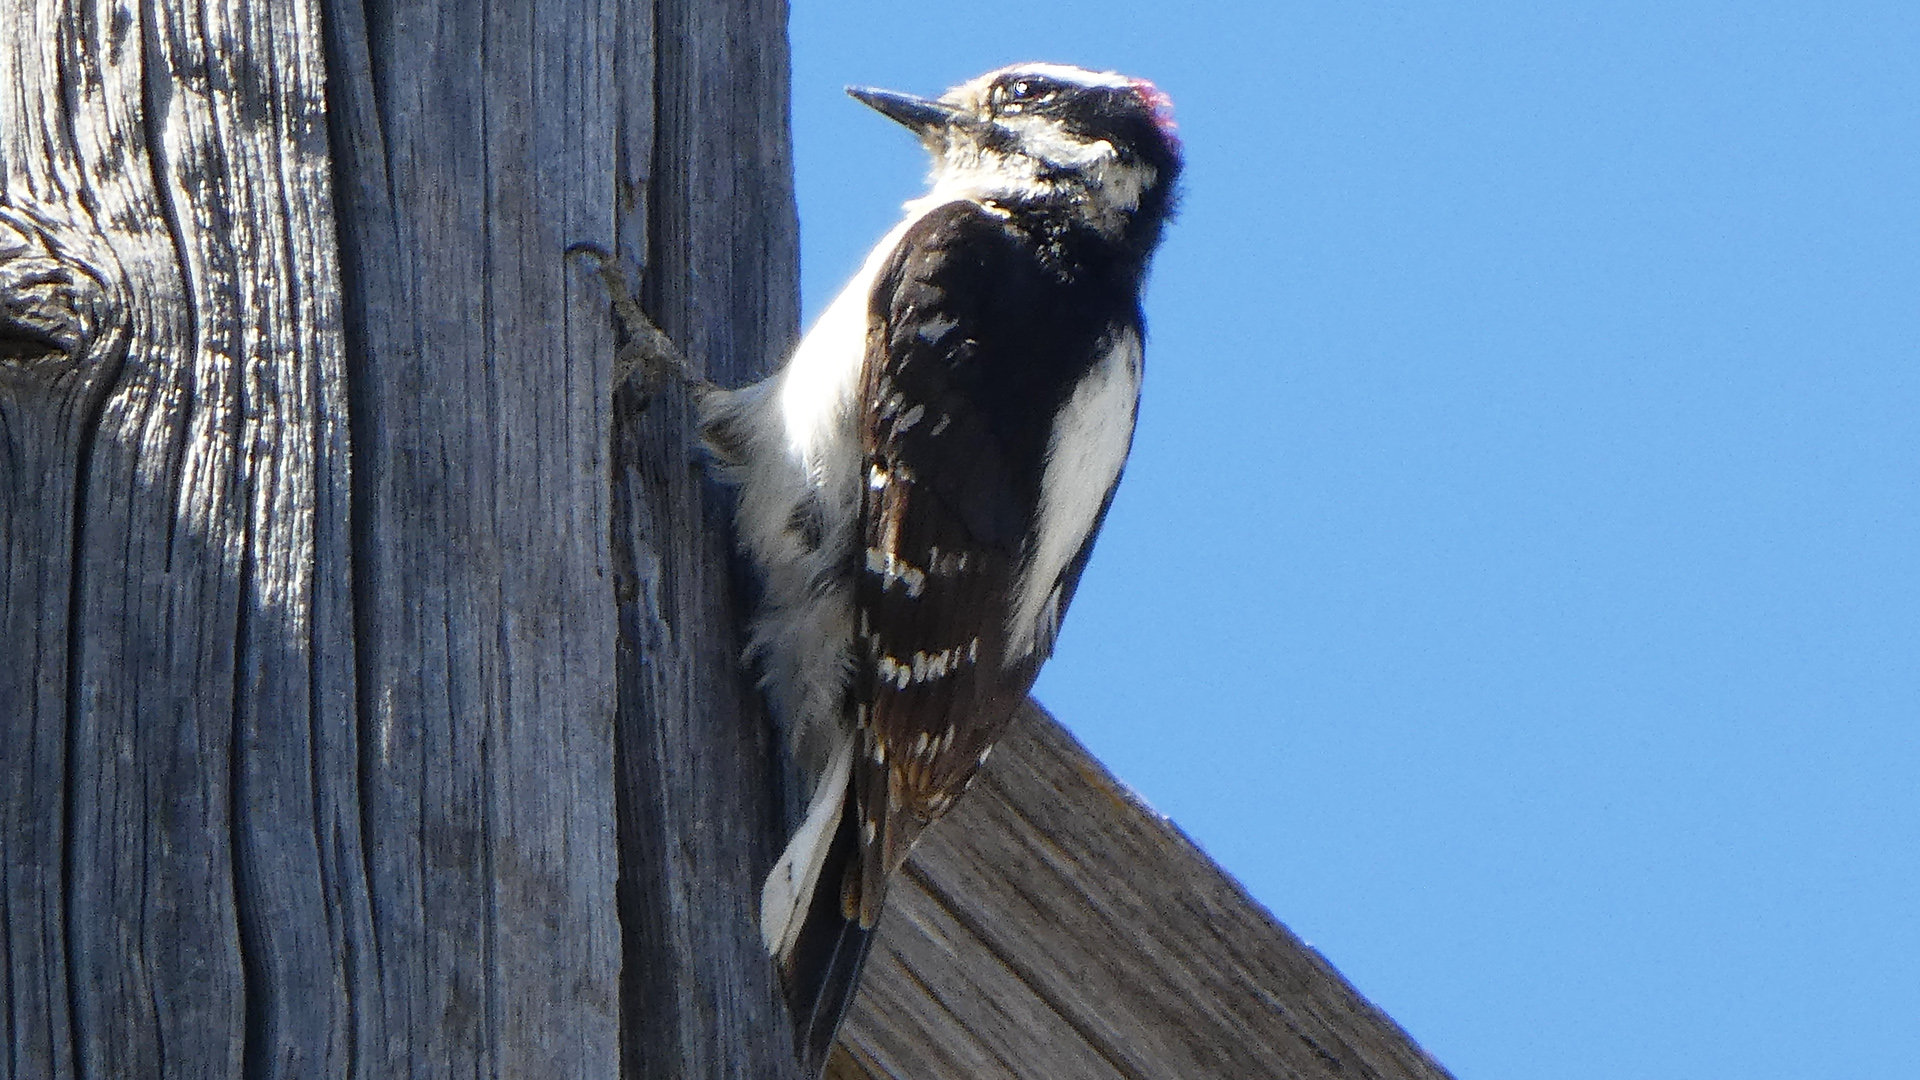 Male, Albuquerque, May 2020